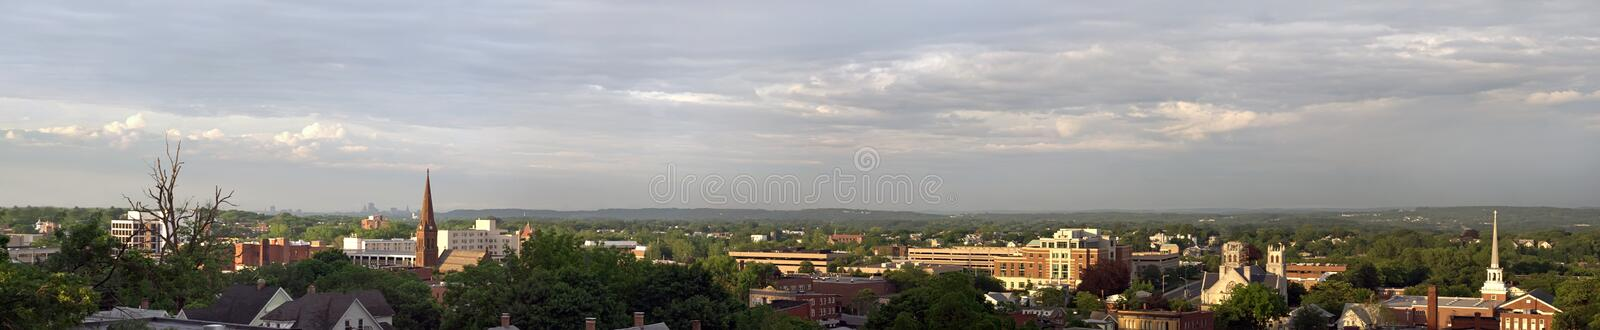 New Britain Connecticut Panorama royalty free stock images